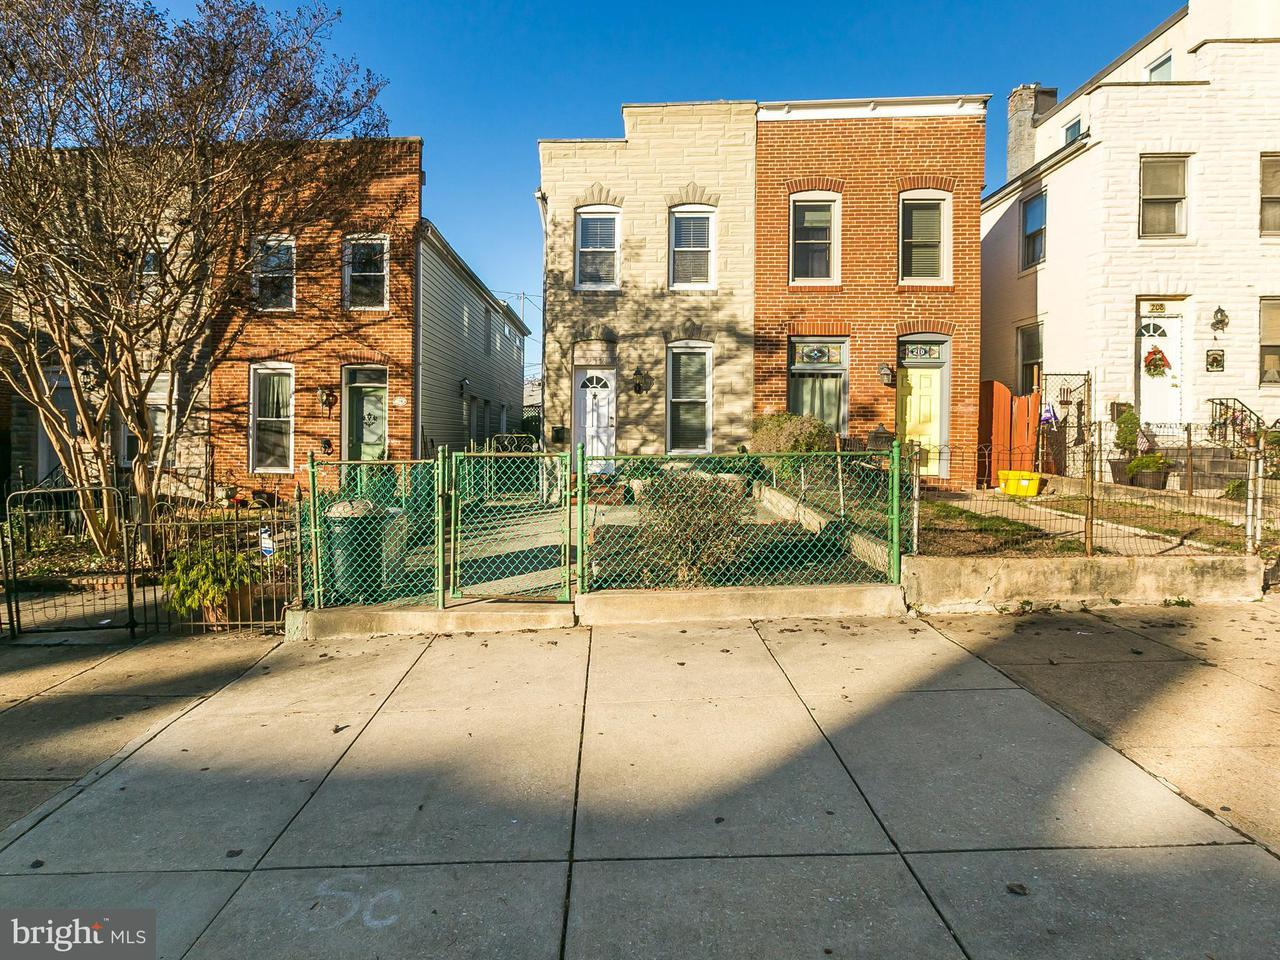 Other Residential for Rent at 212 Washington St S Baltimore, Maryland 21231 United States